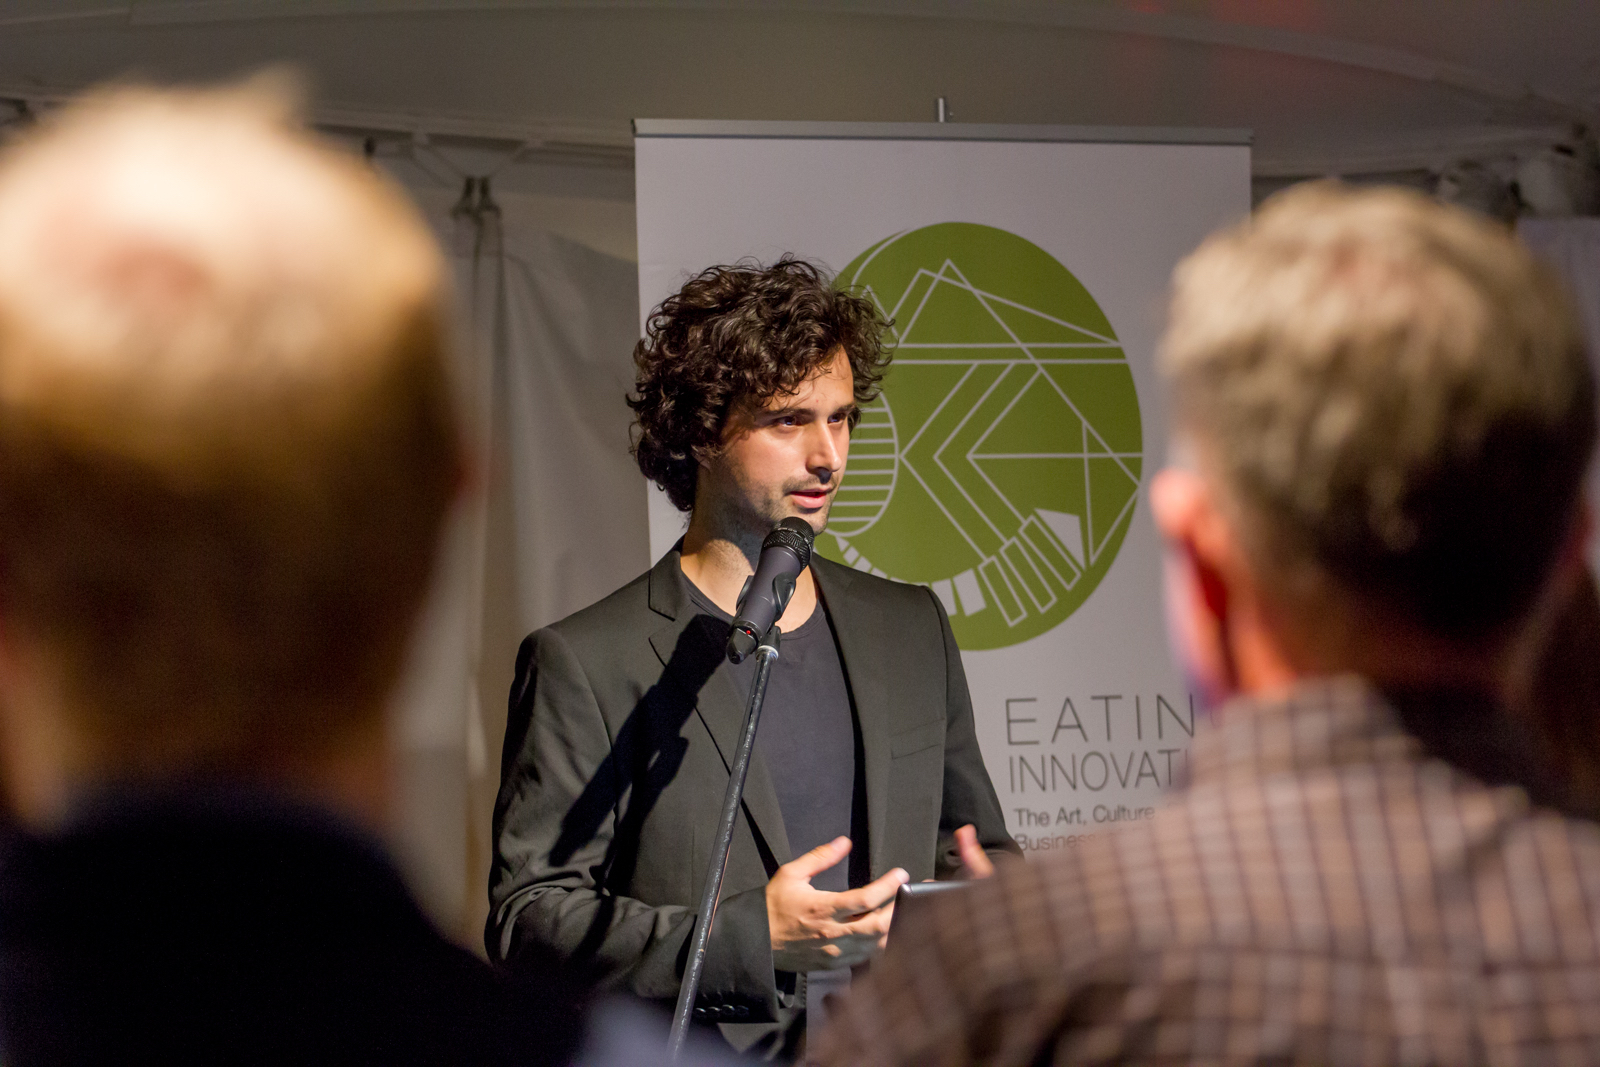 Kubo Dzamba, Future Food Salon 2014 at the Eating Innovation conference, Space for Life Botanical Gardens & Insectarium, Montreal.